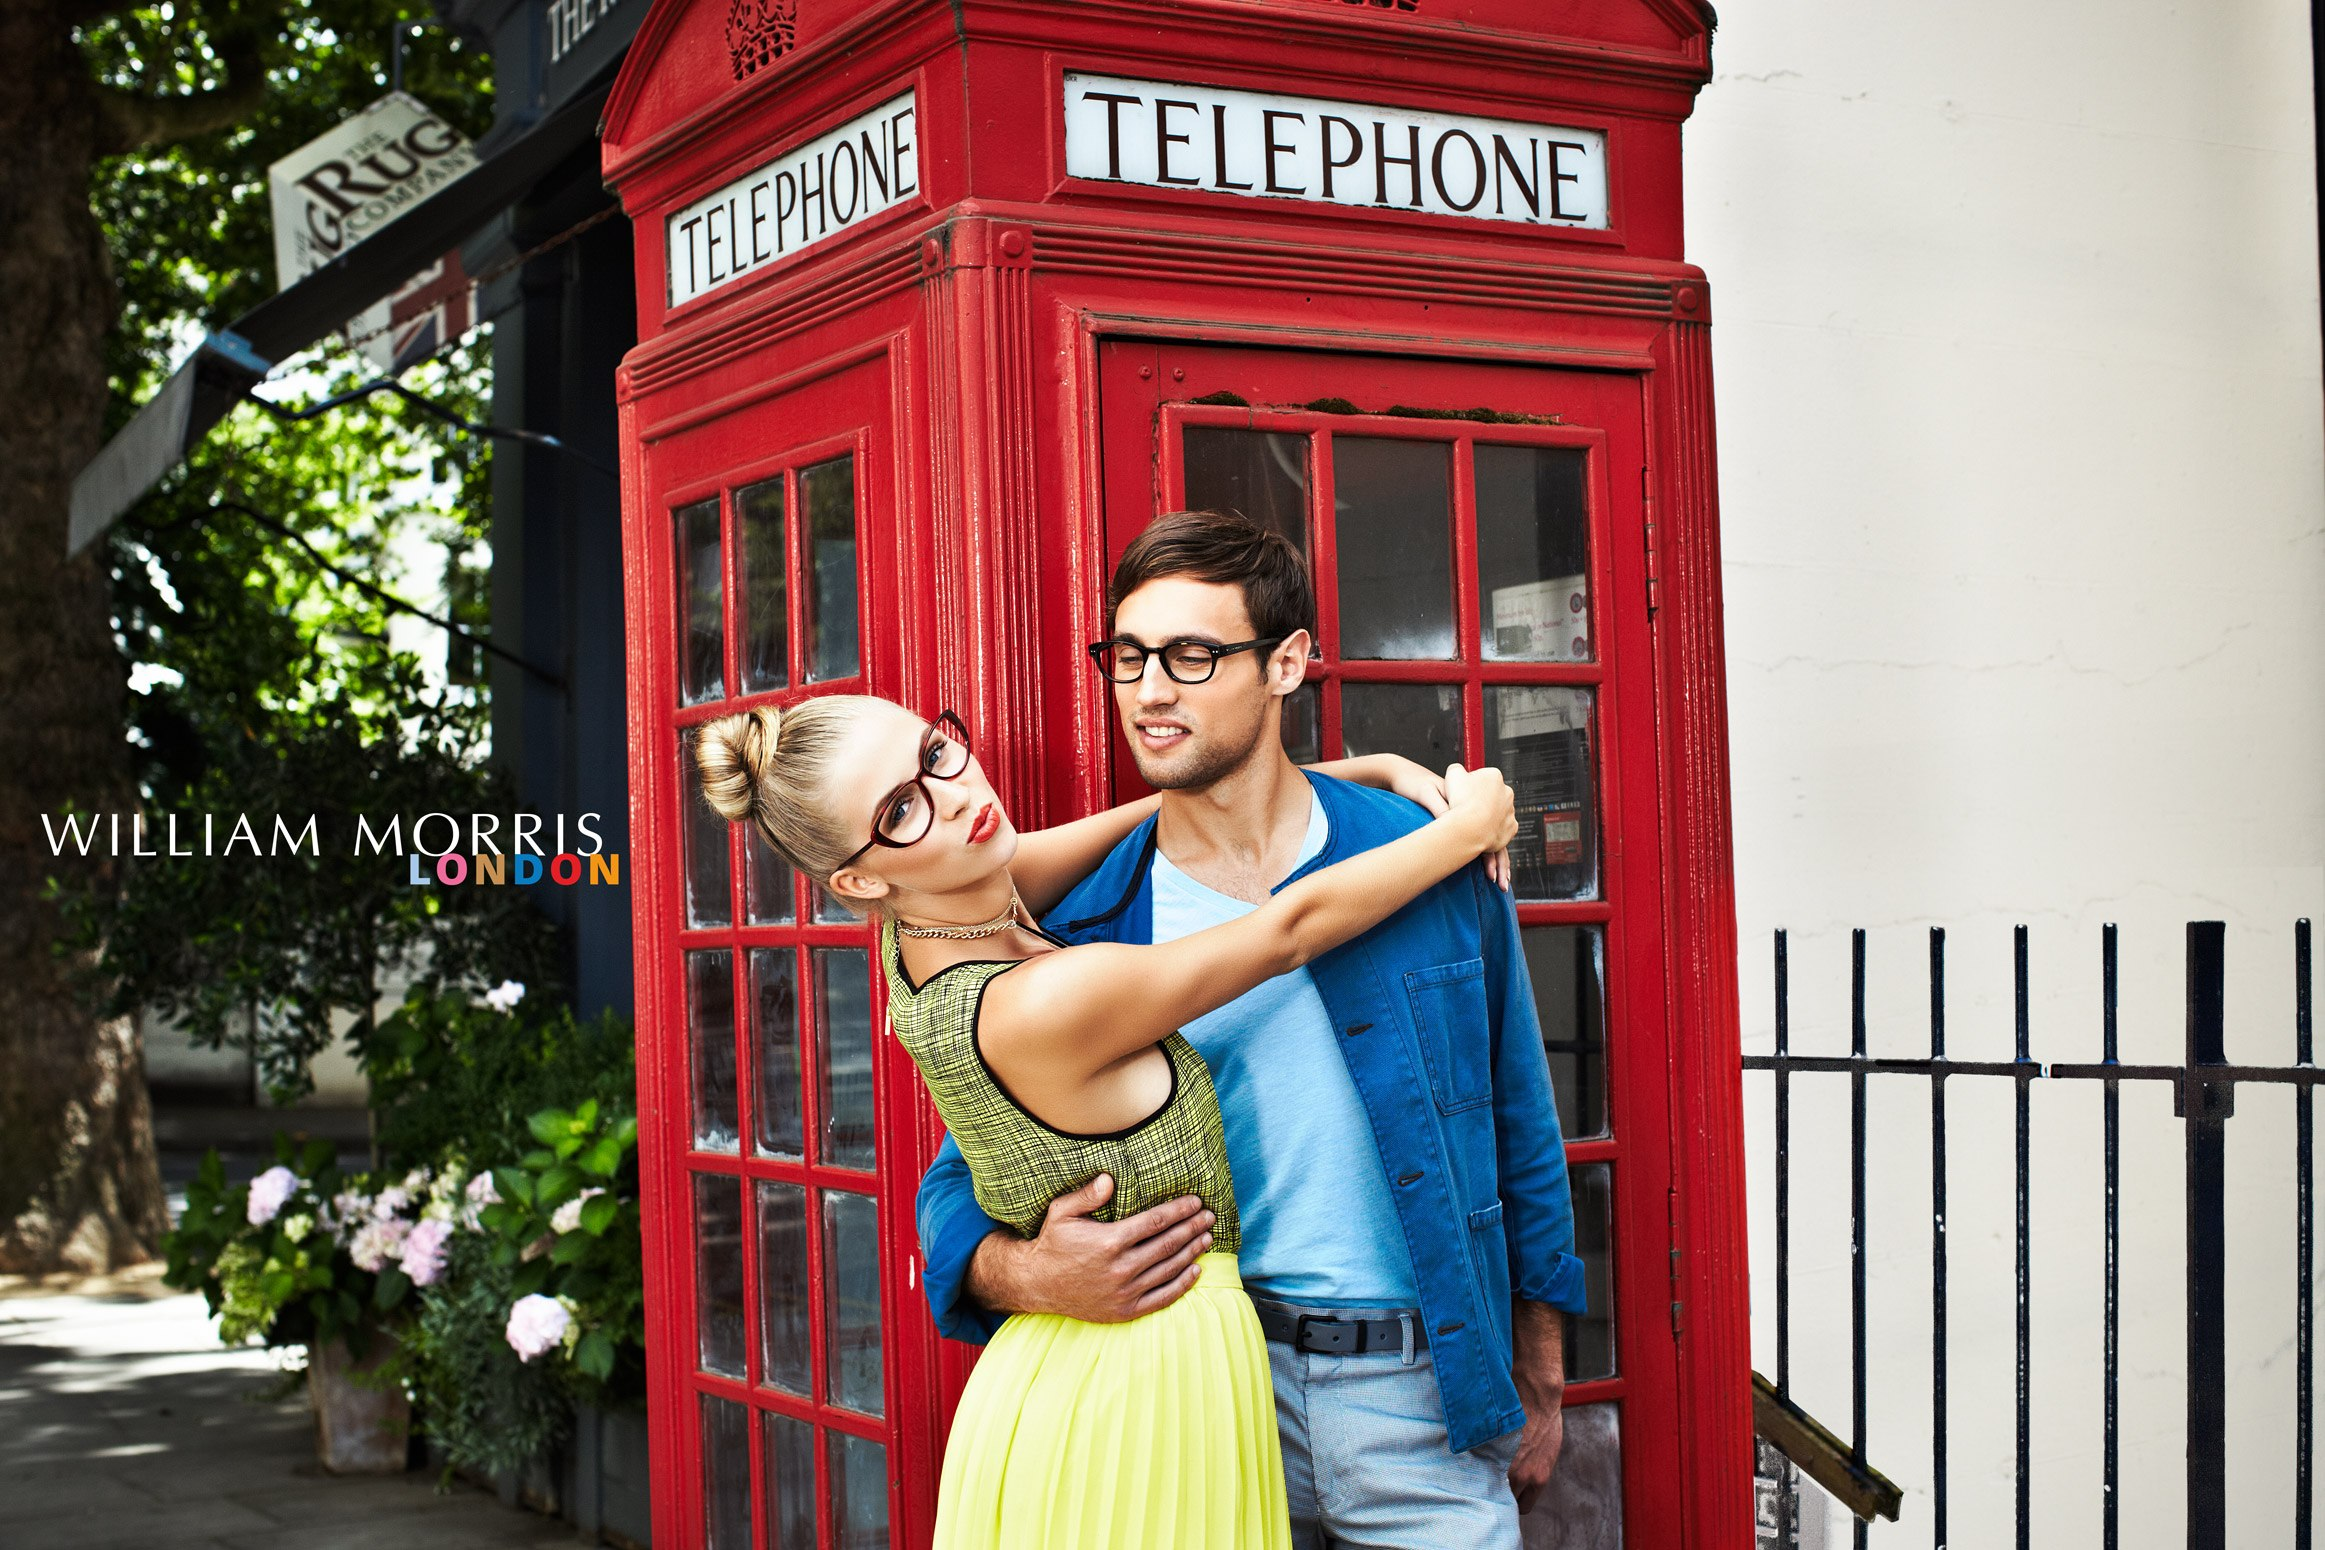 william-morris-ruth-rose-fashion-glasses-accessories-london-hermione-corfield-london-tourist-notting-hill-chelsea-fashion-boy-girl-colour-house-21